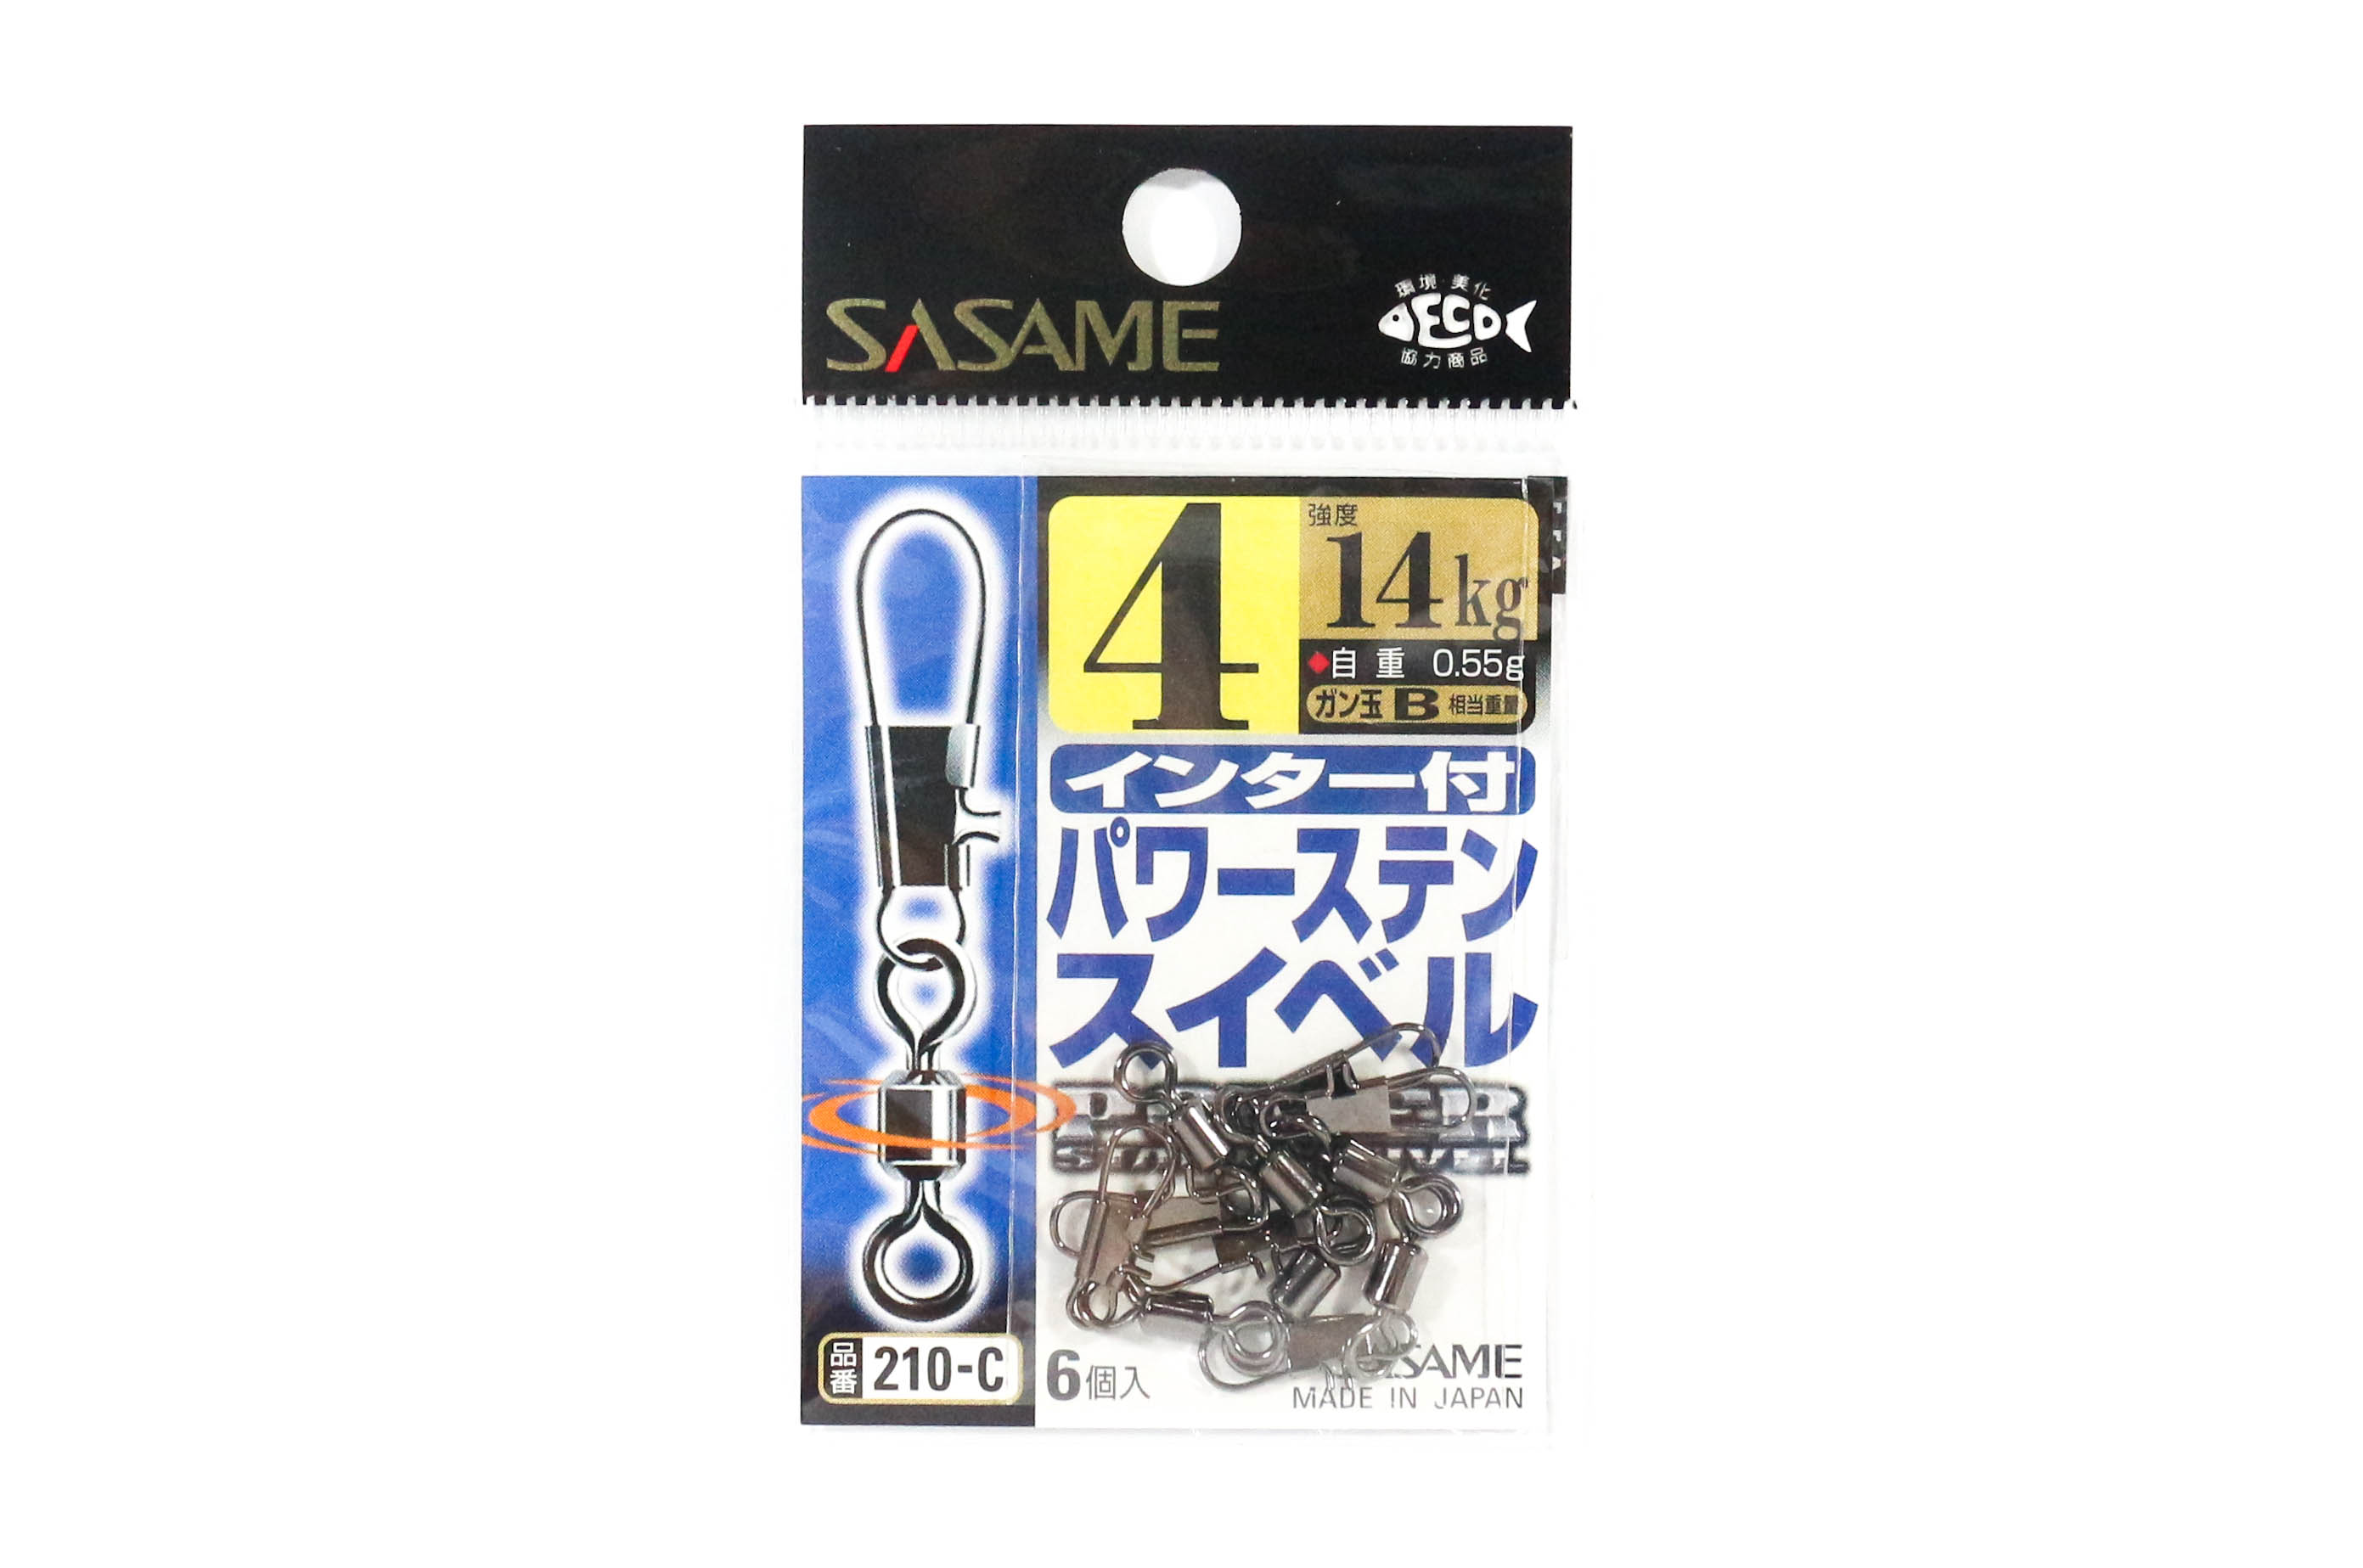 Sasame 210-C Power Stain Snap Swivel Smooth Spin Black Size 4 (1195)